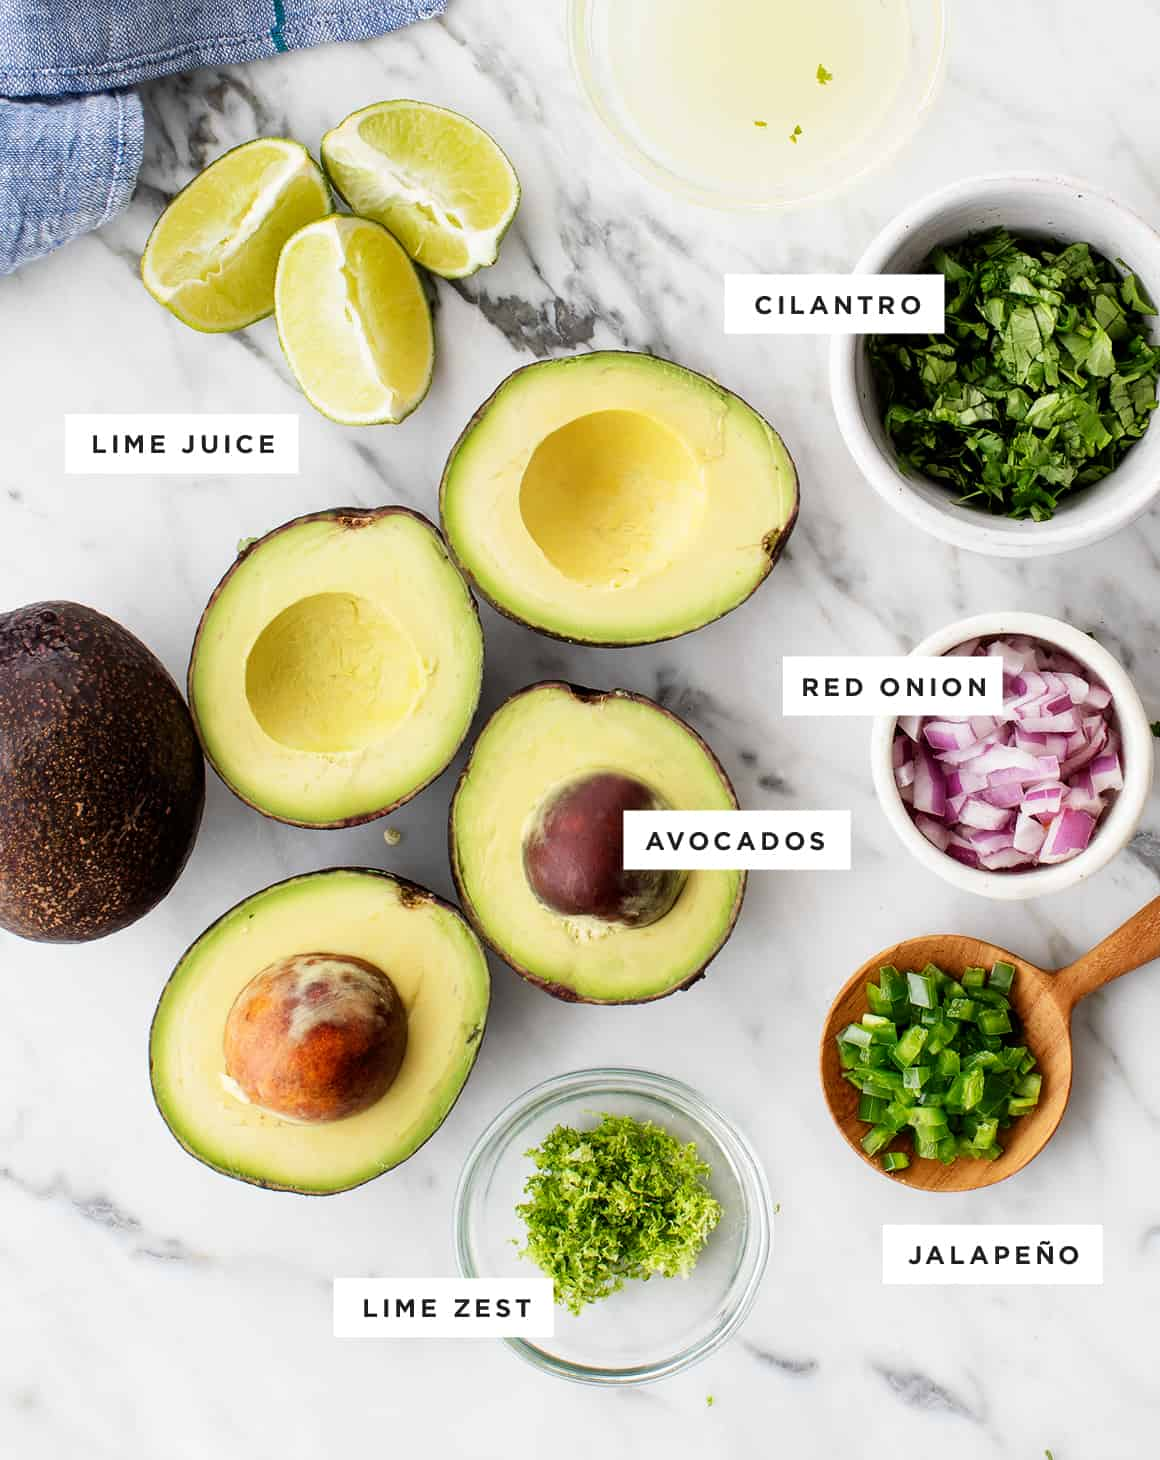 Easy guacamole recipe ingredients